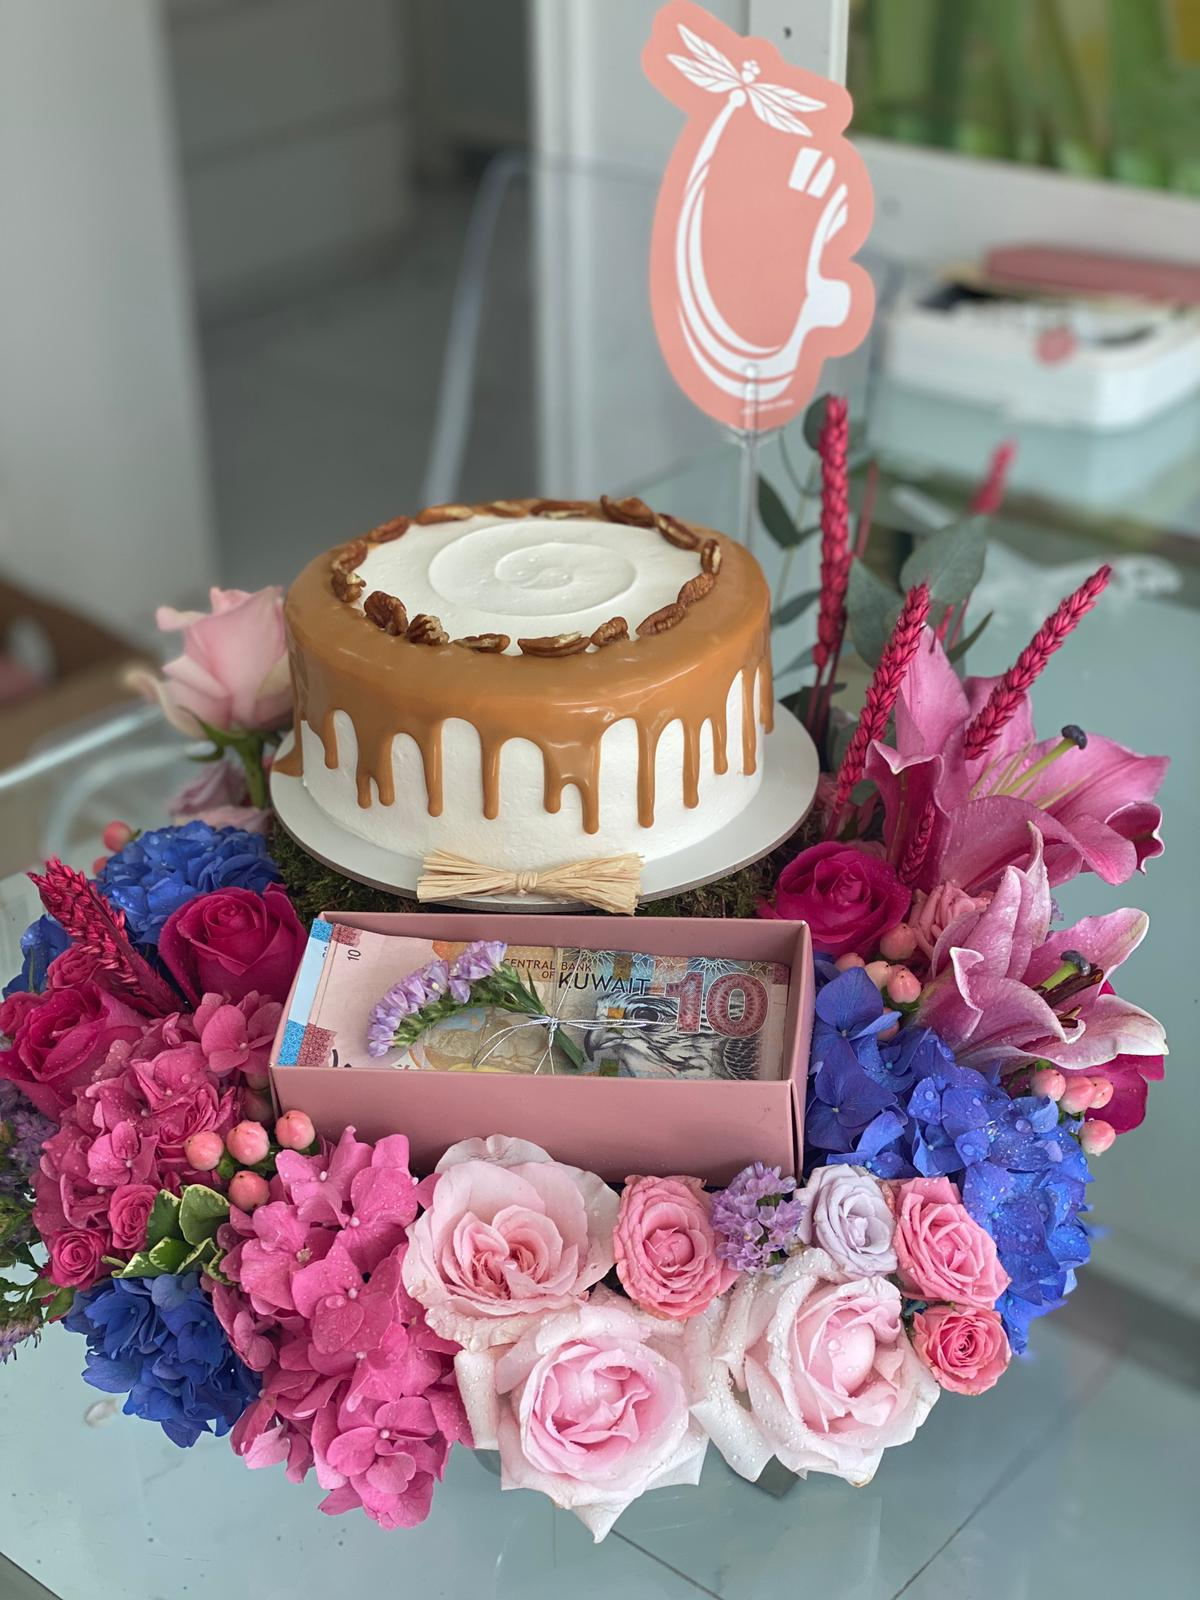 Cakes of Love